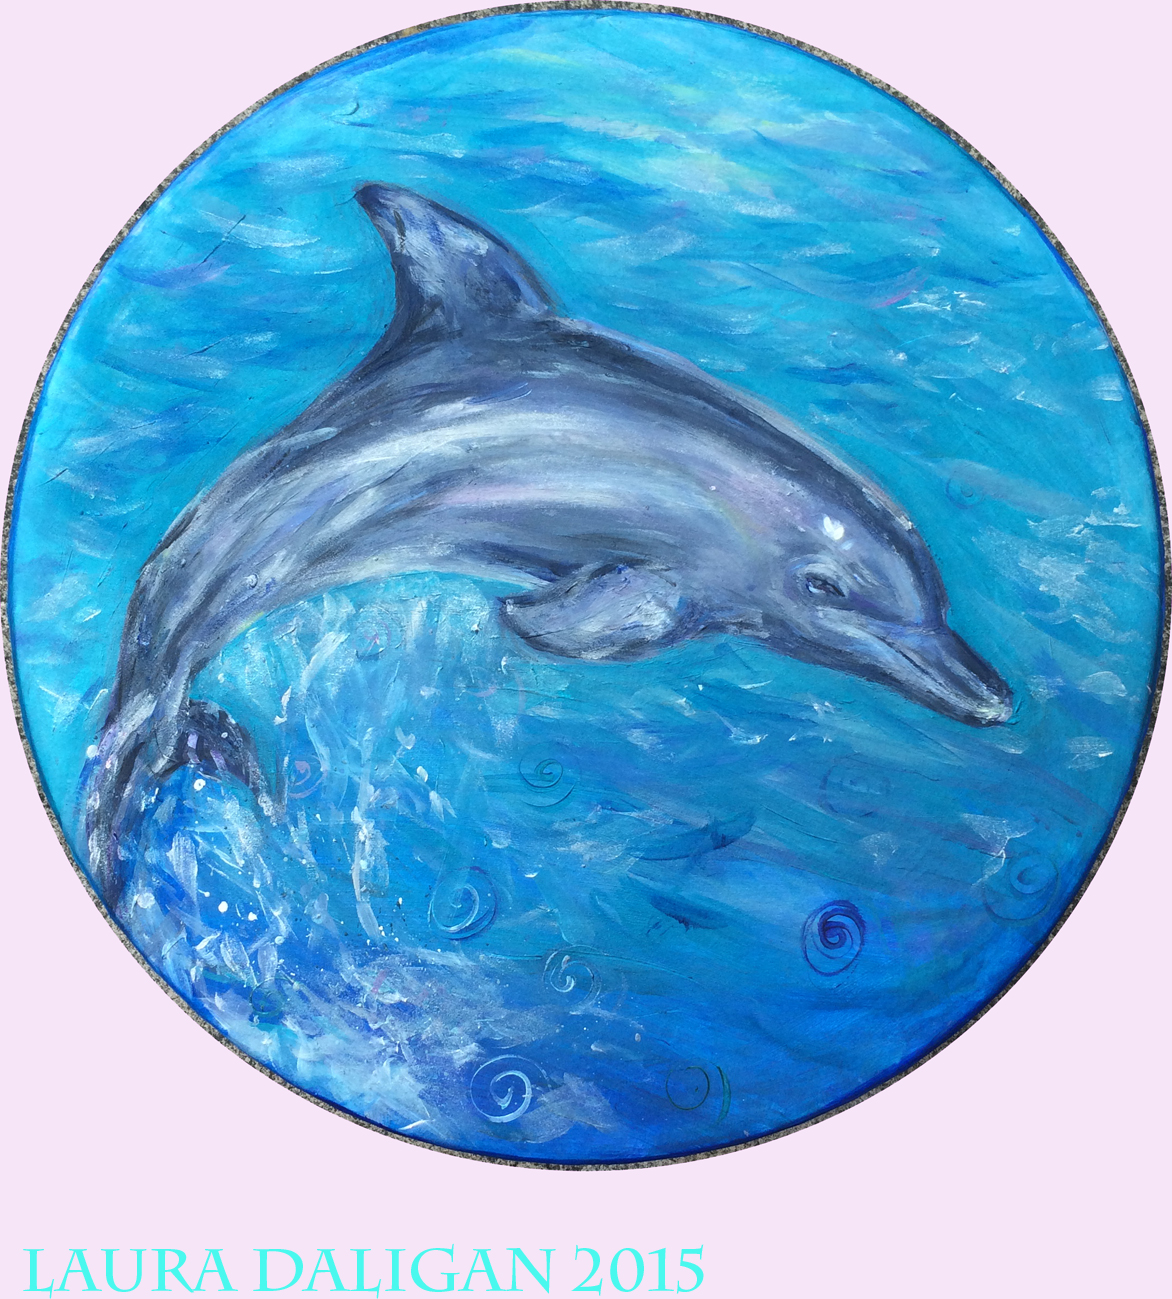 Julie Ann's Dolphin Drum Commission